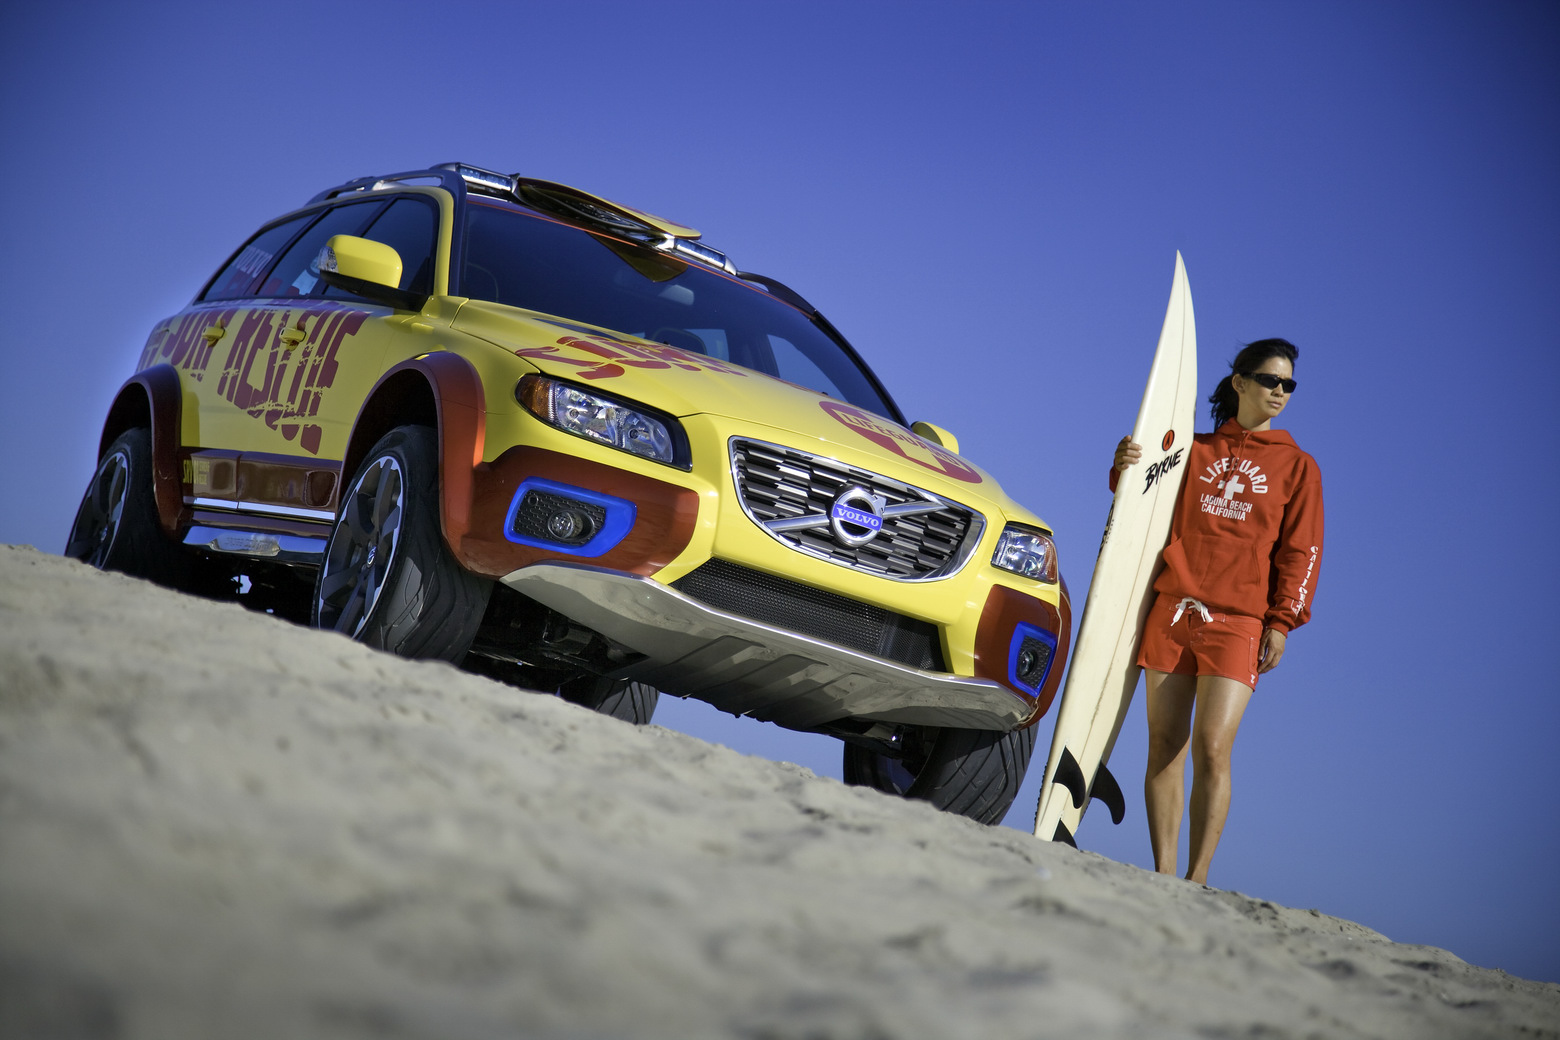 2019 Volvo XC70 Surf Rescue Concept photo - 4